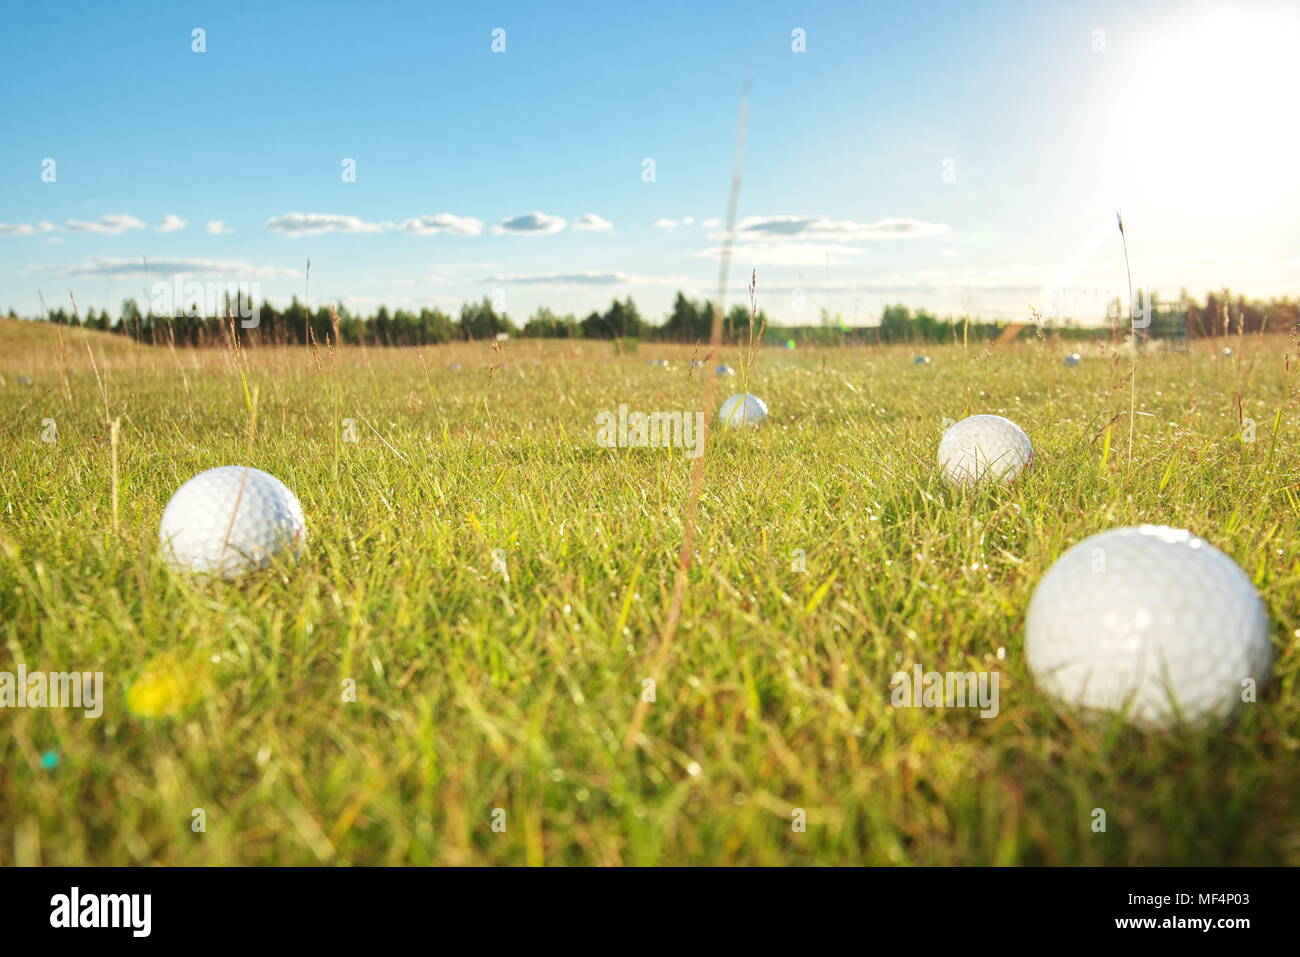 Golf green course in the countryside - Stock Image